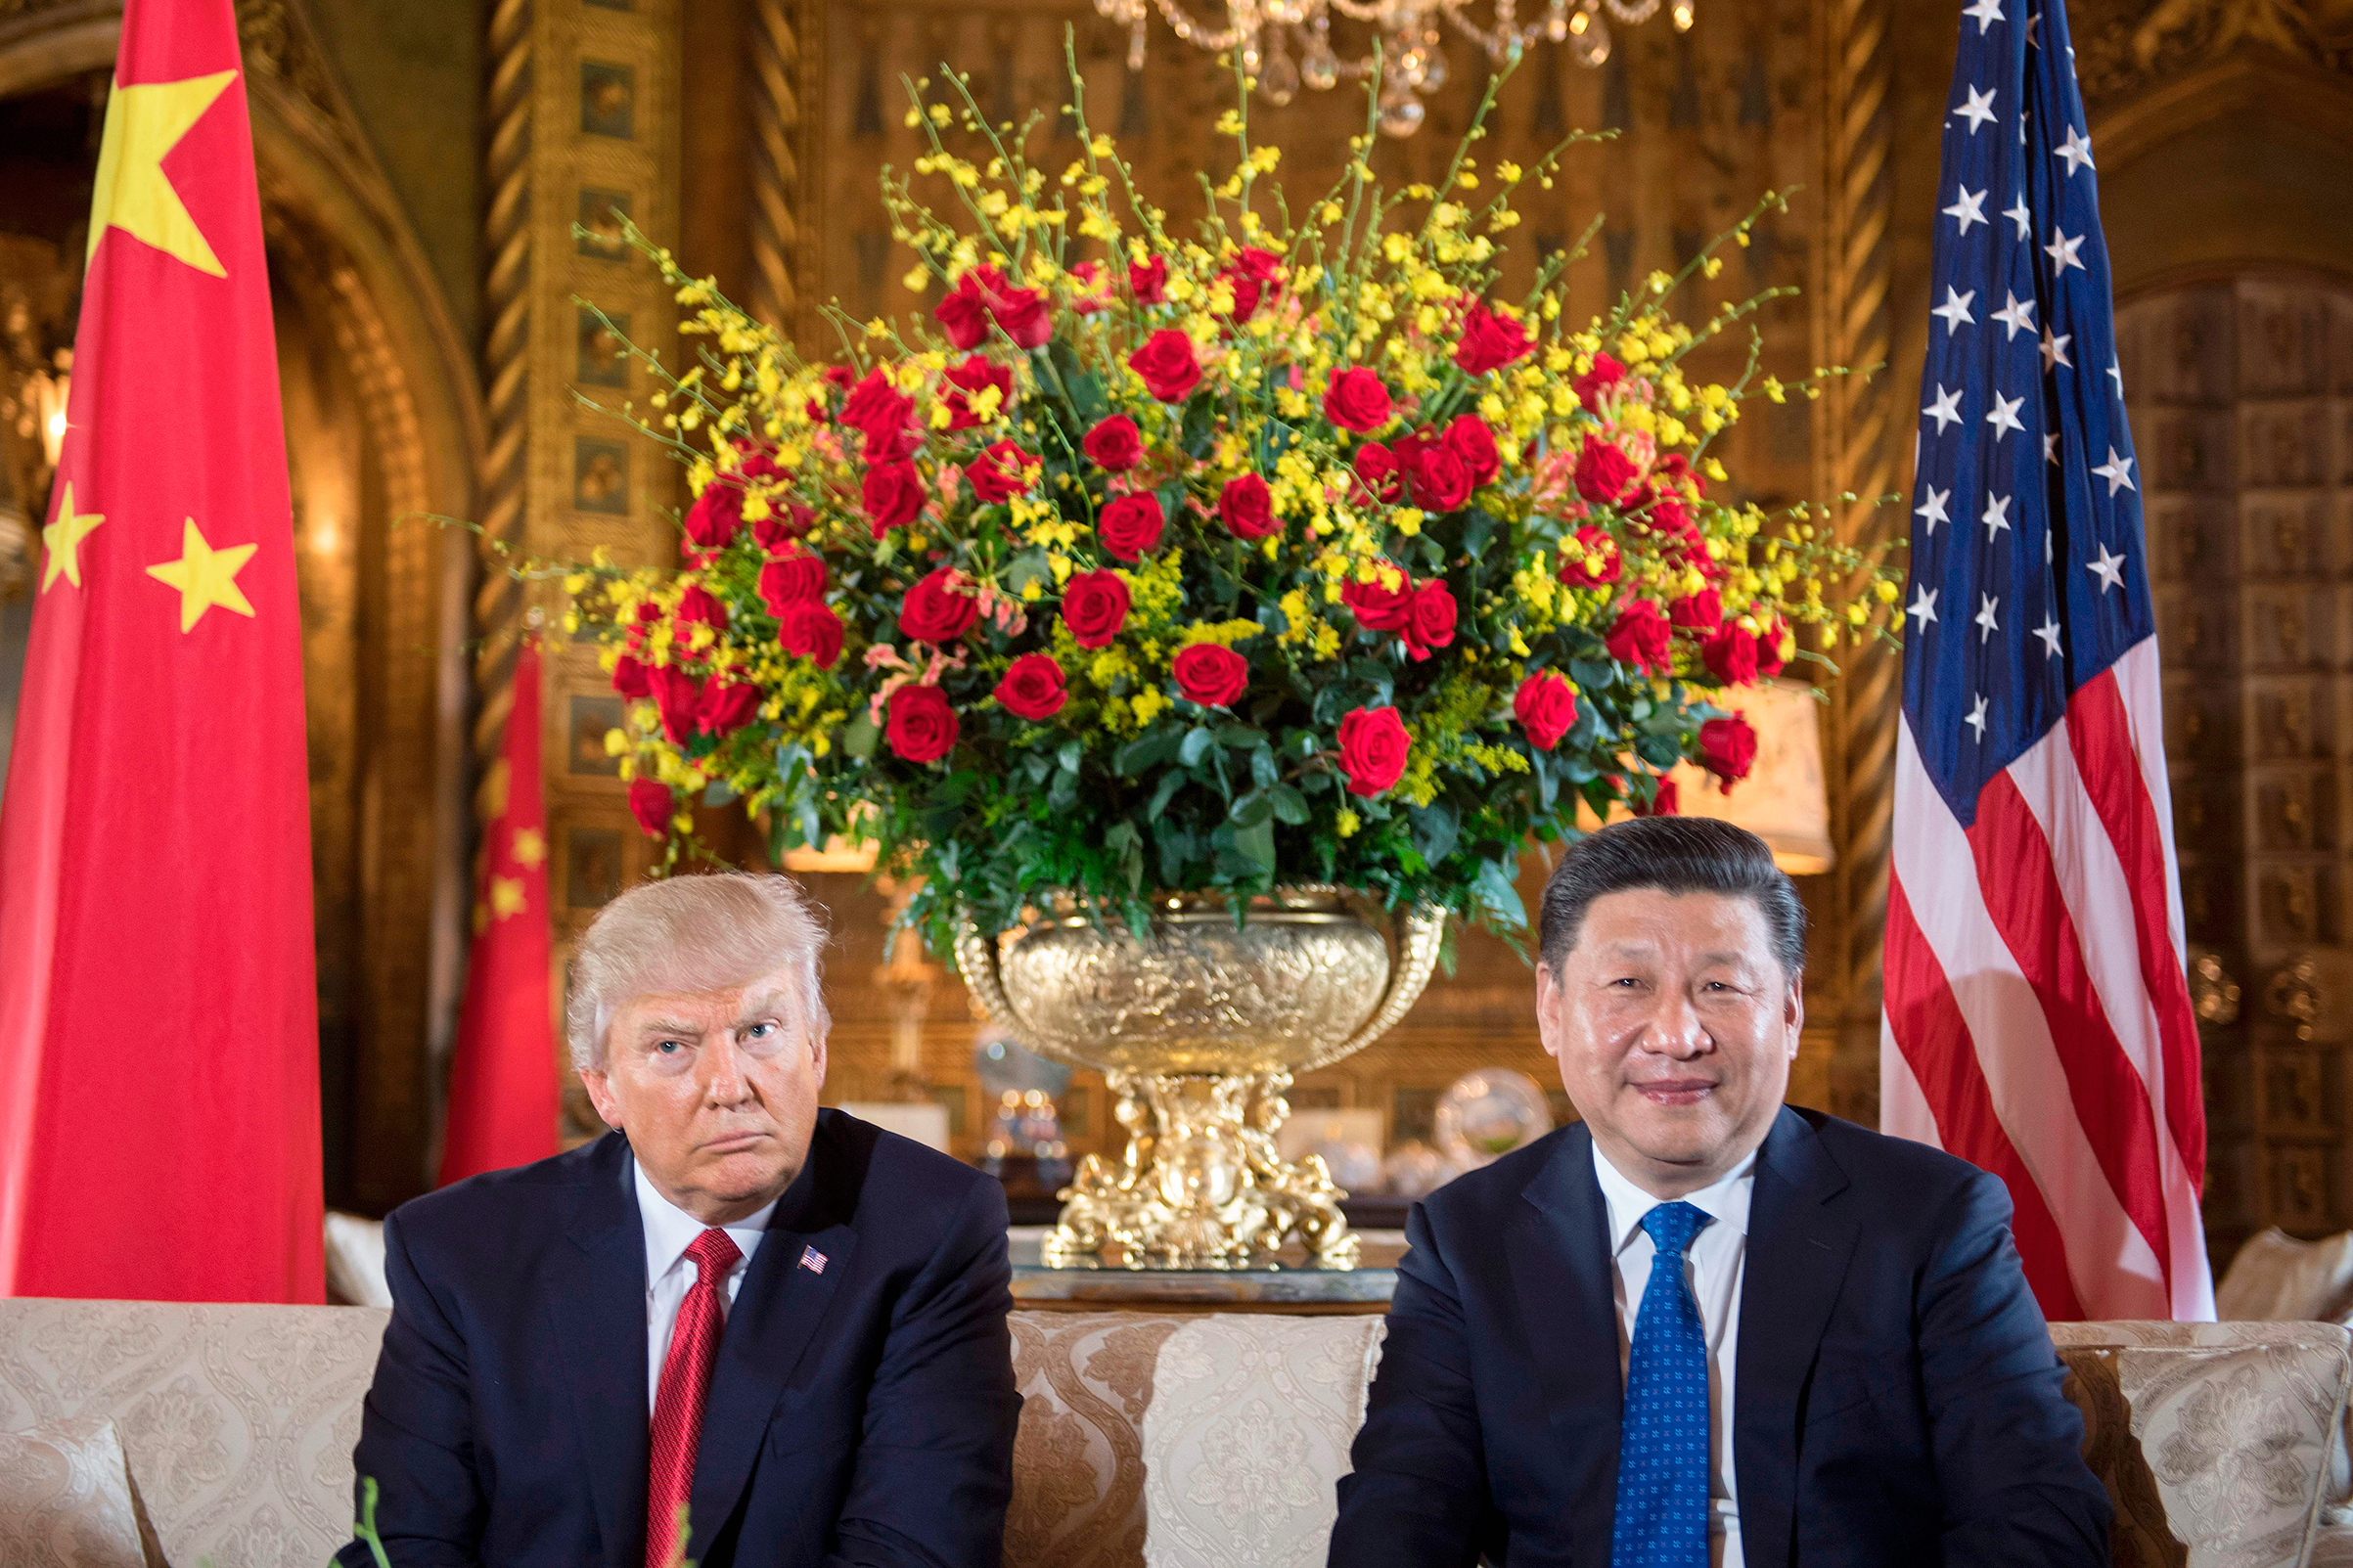 Global side-eye: Trump and Xi's relationship has grown more tense since meeting at Mar-a-Lago earlier this year